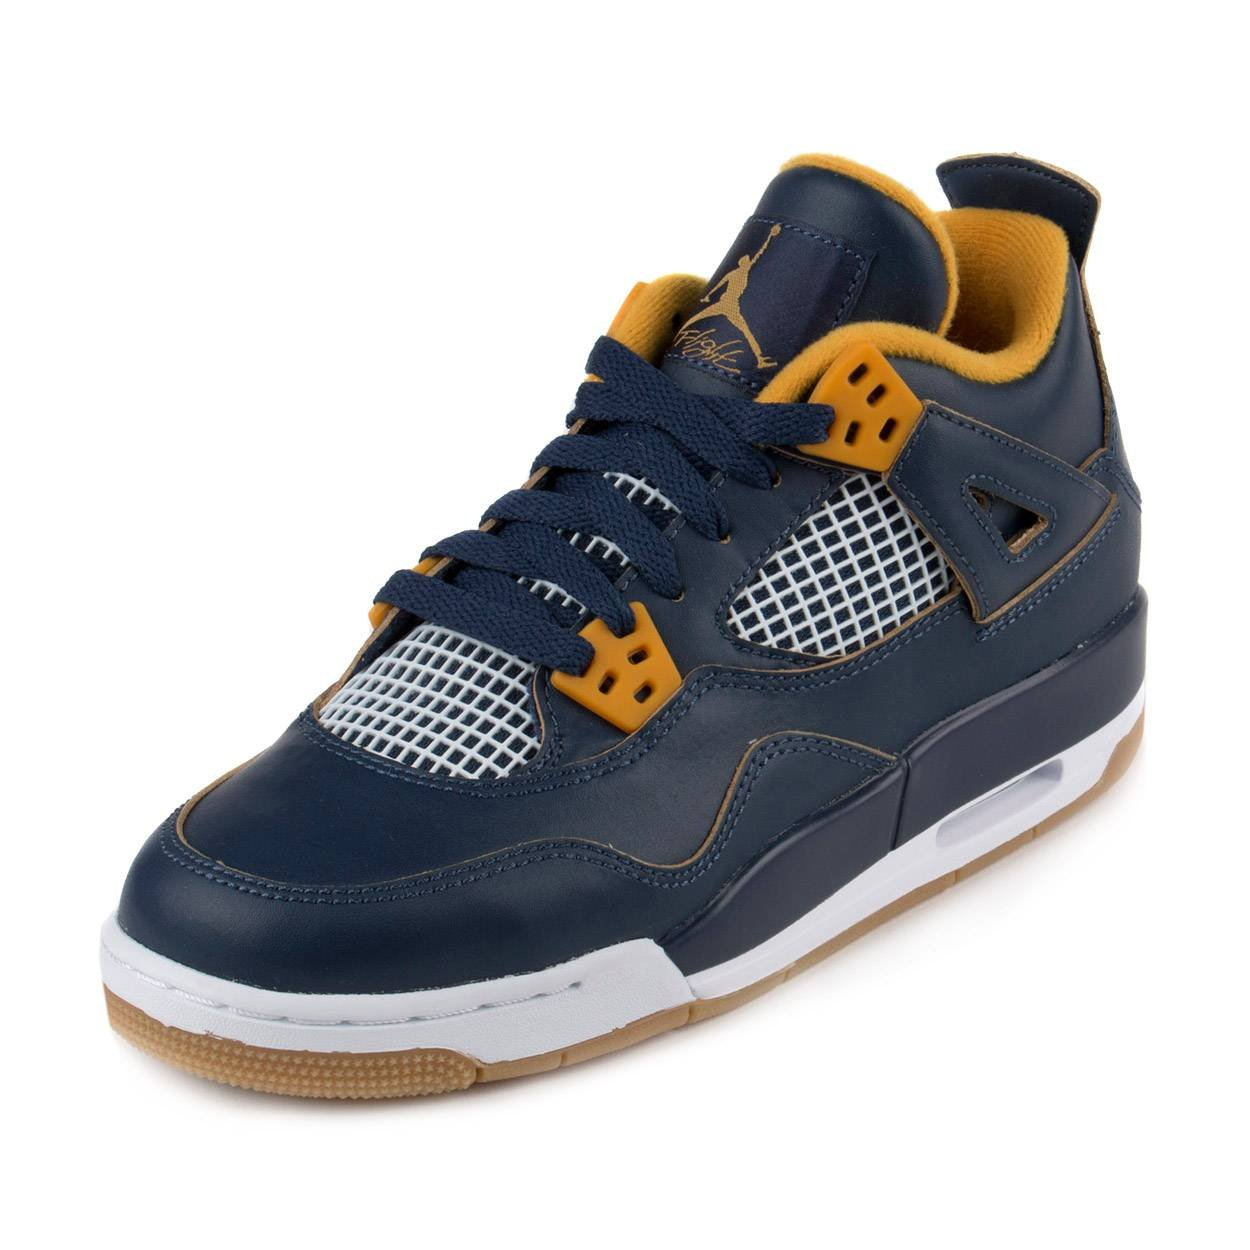 8773c2b4d3ee Galleon - Nike Boys Air Jordan 4 Retro BG